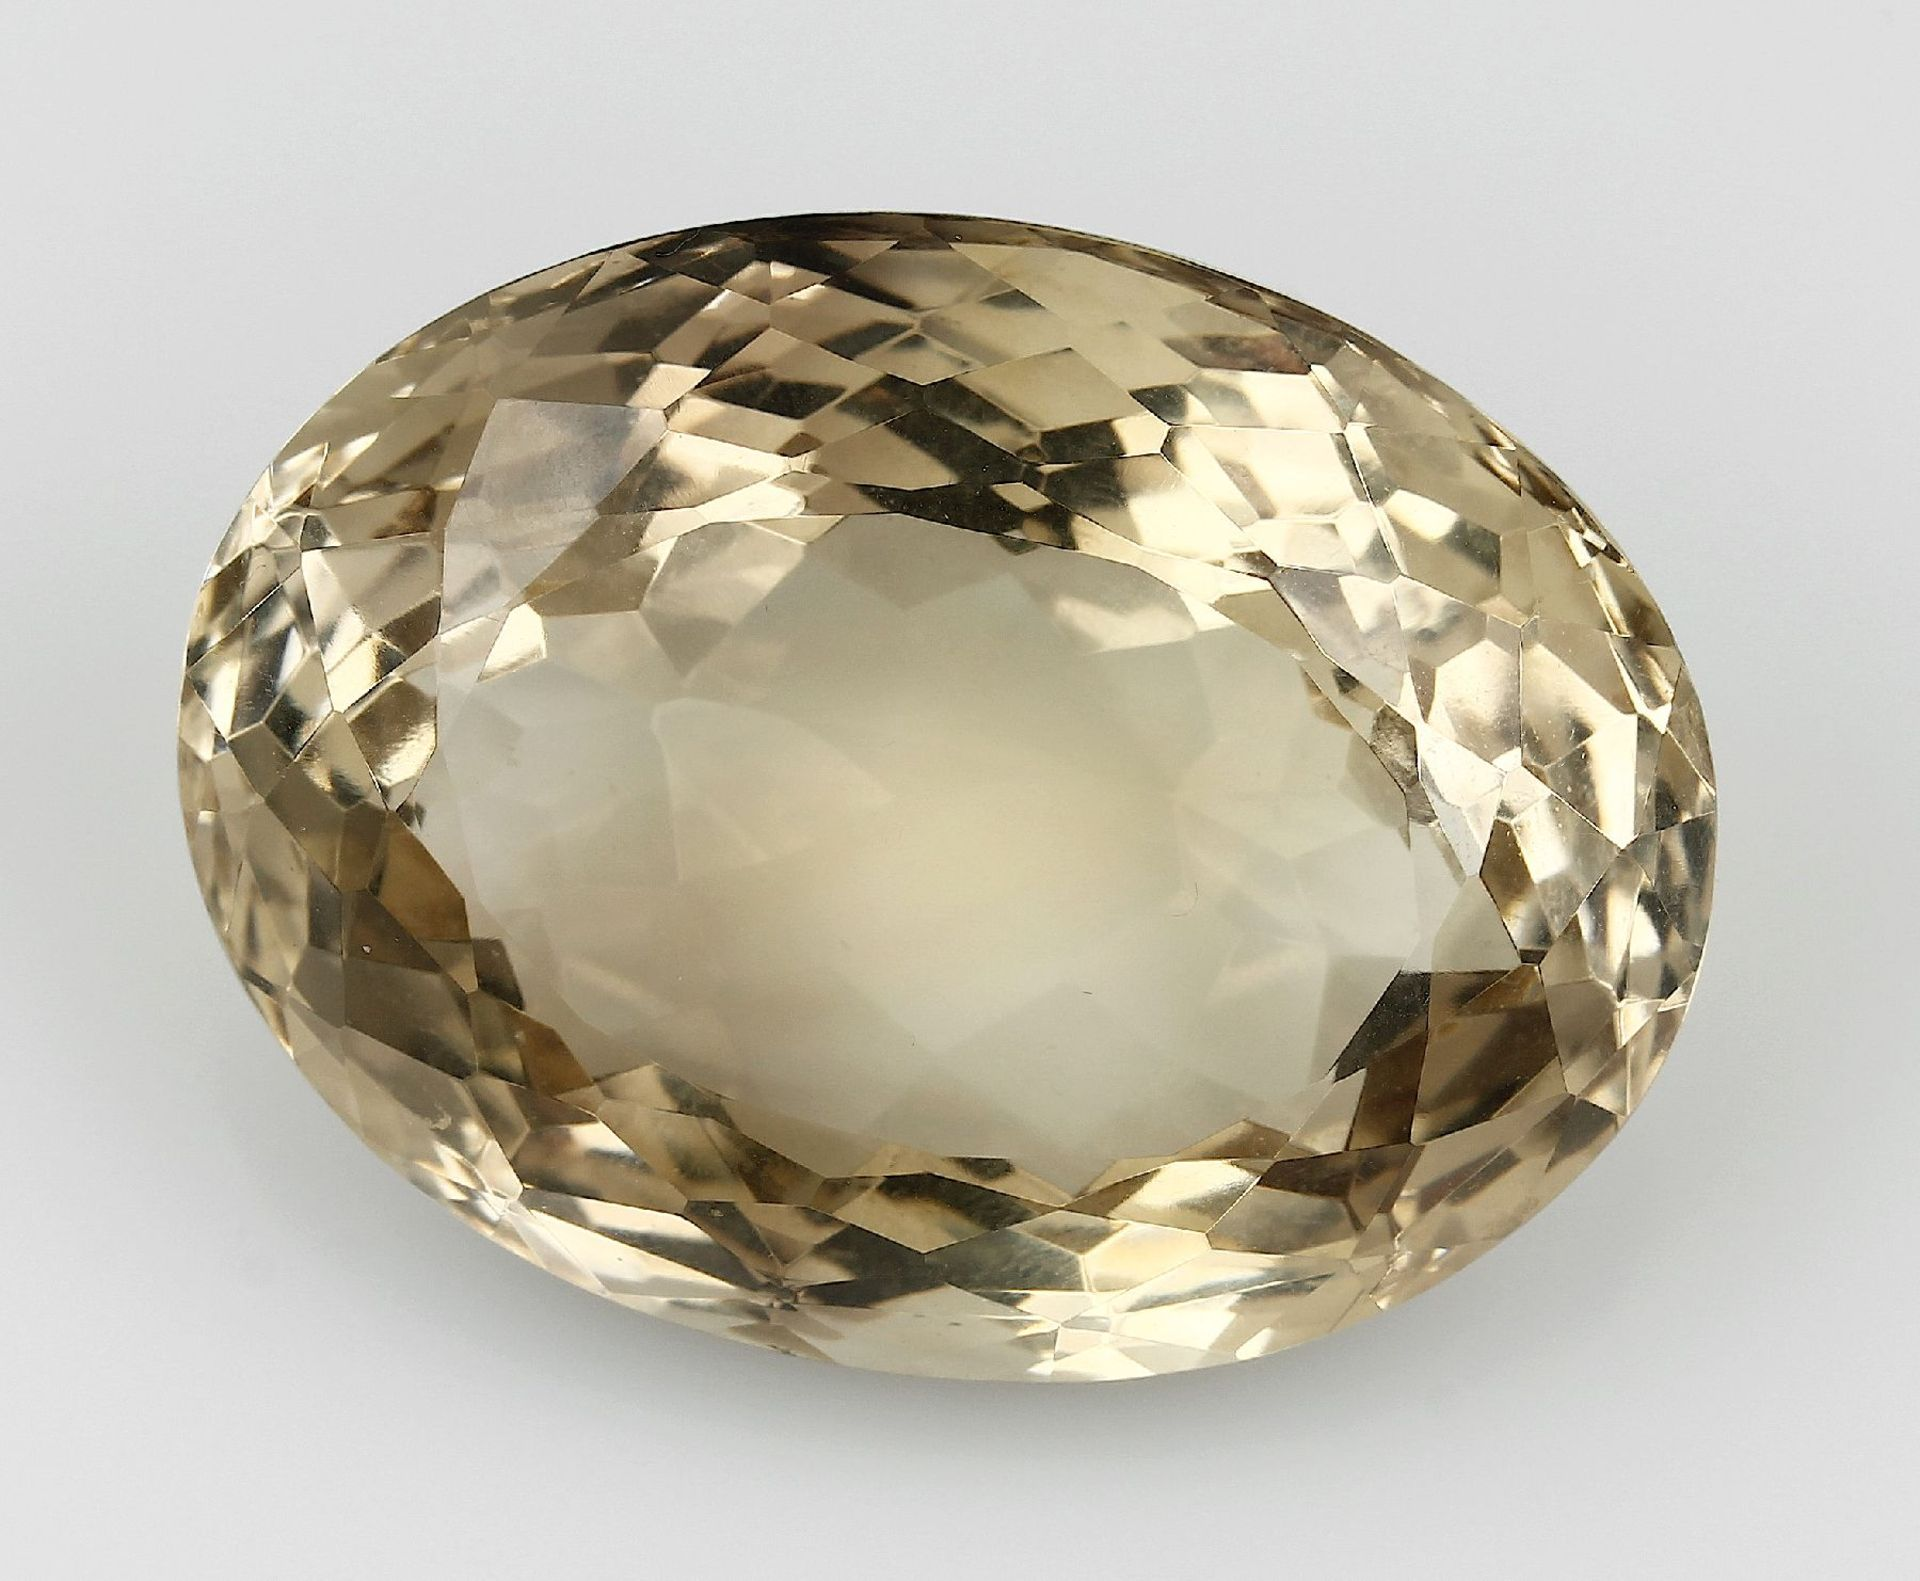 Los 30014 - Loser Citrin ca. 284.00 ct, oval facett.Loose citrine approx. 284.00 ct , oval bevelled